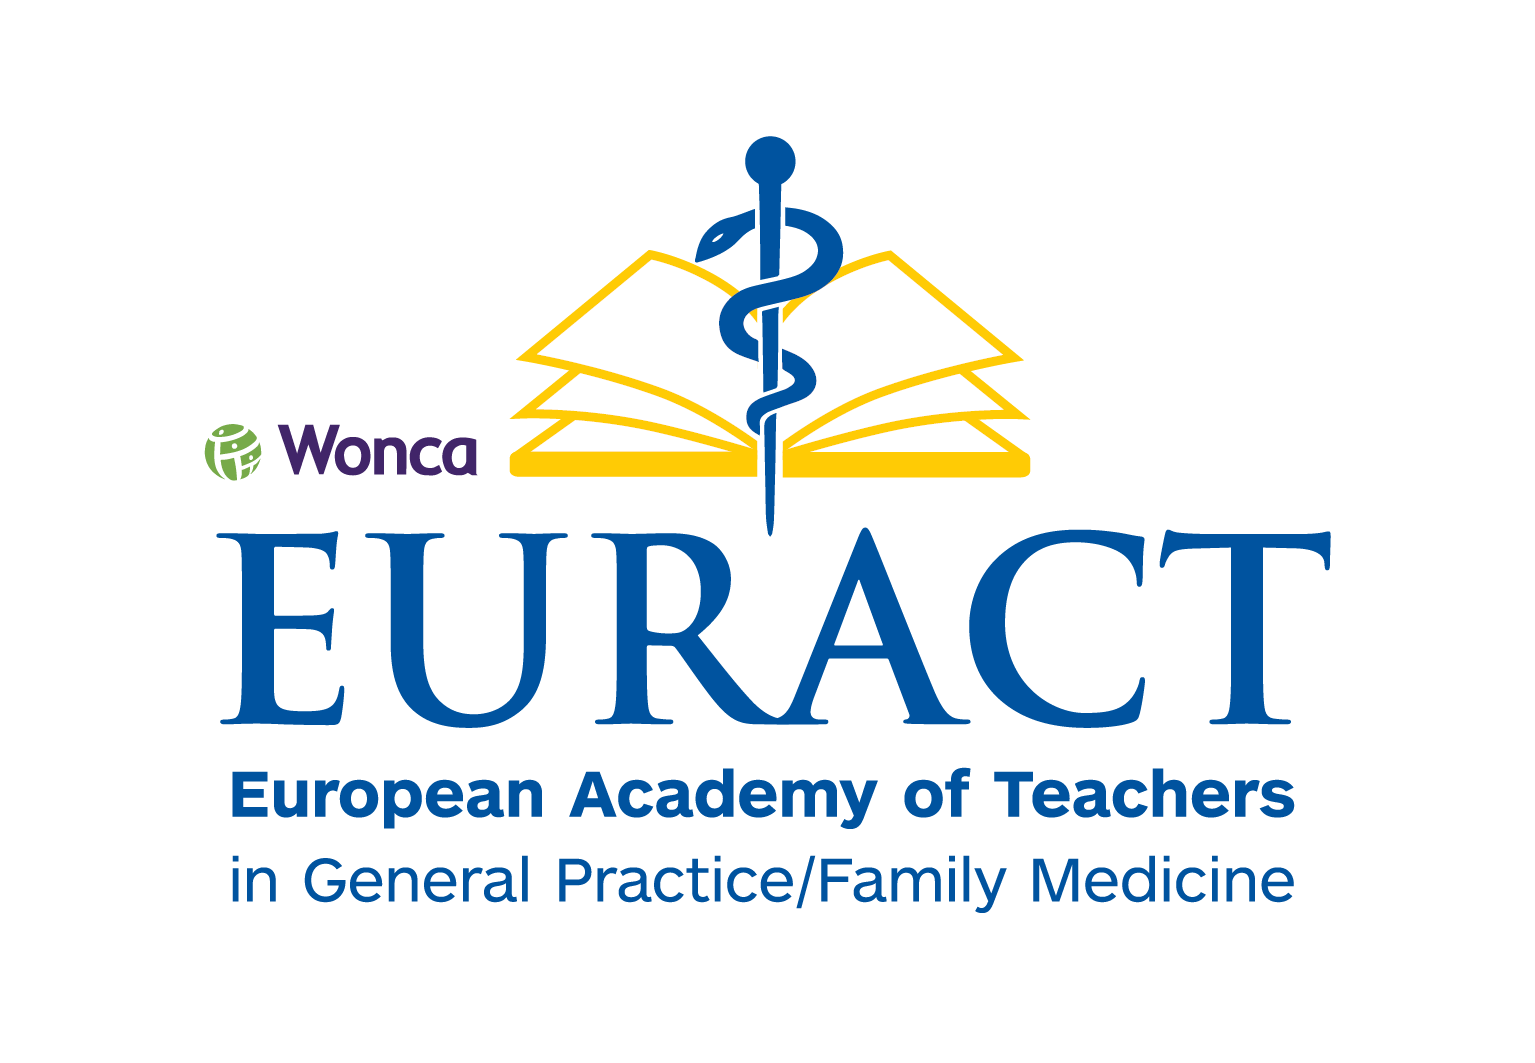 logo for European Academy of Teachers in General Practice